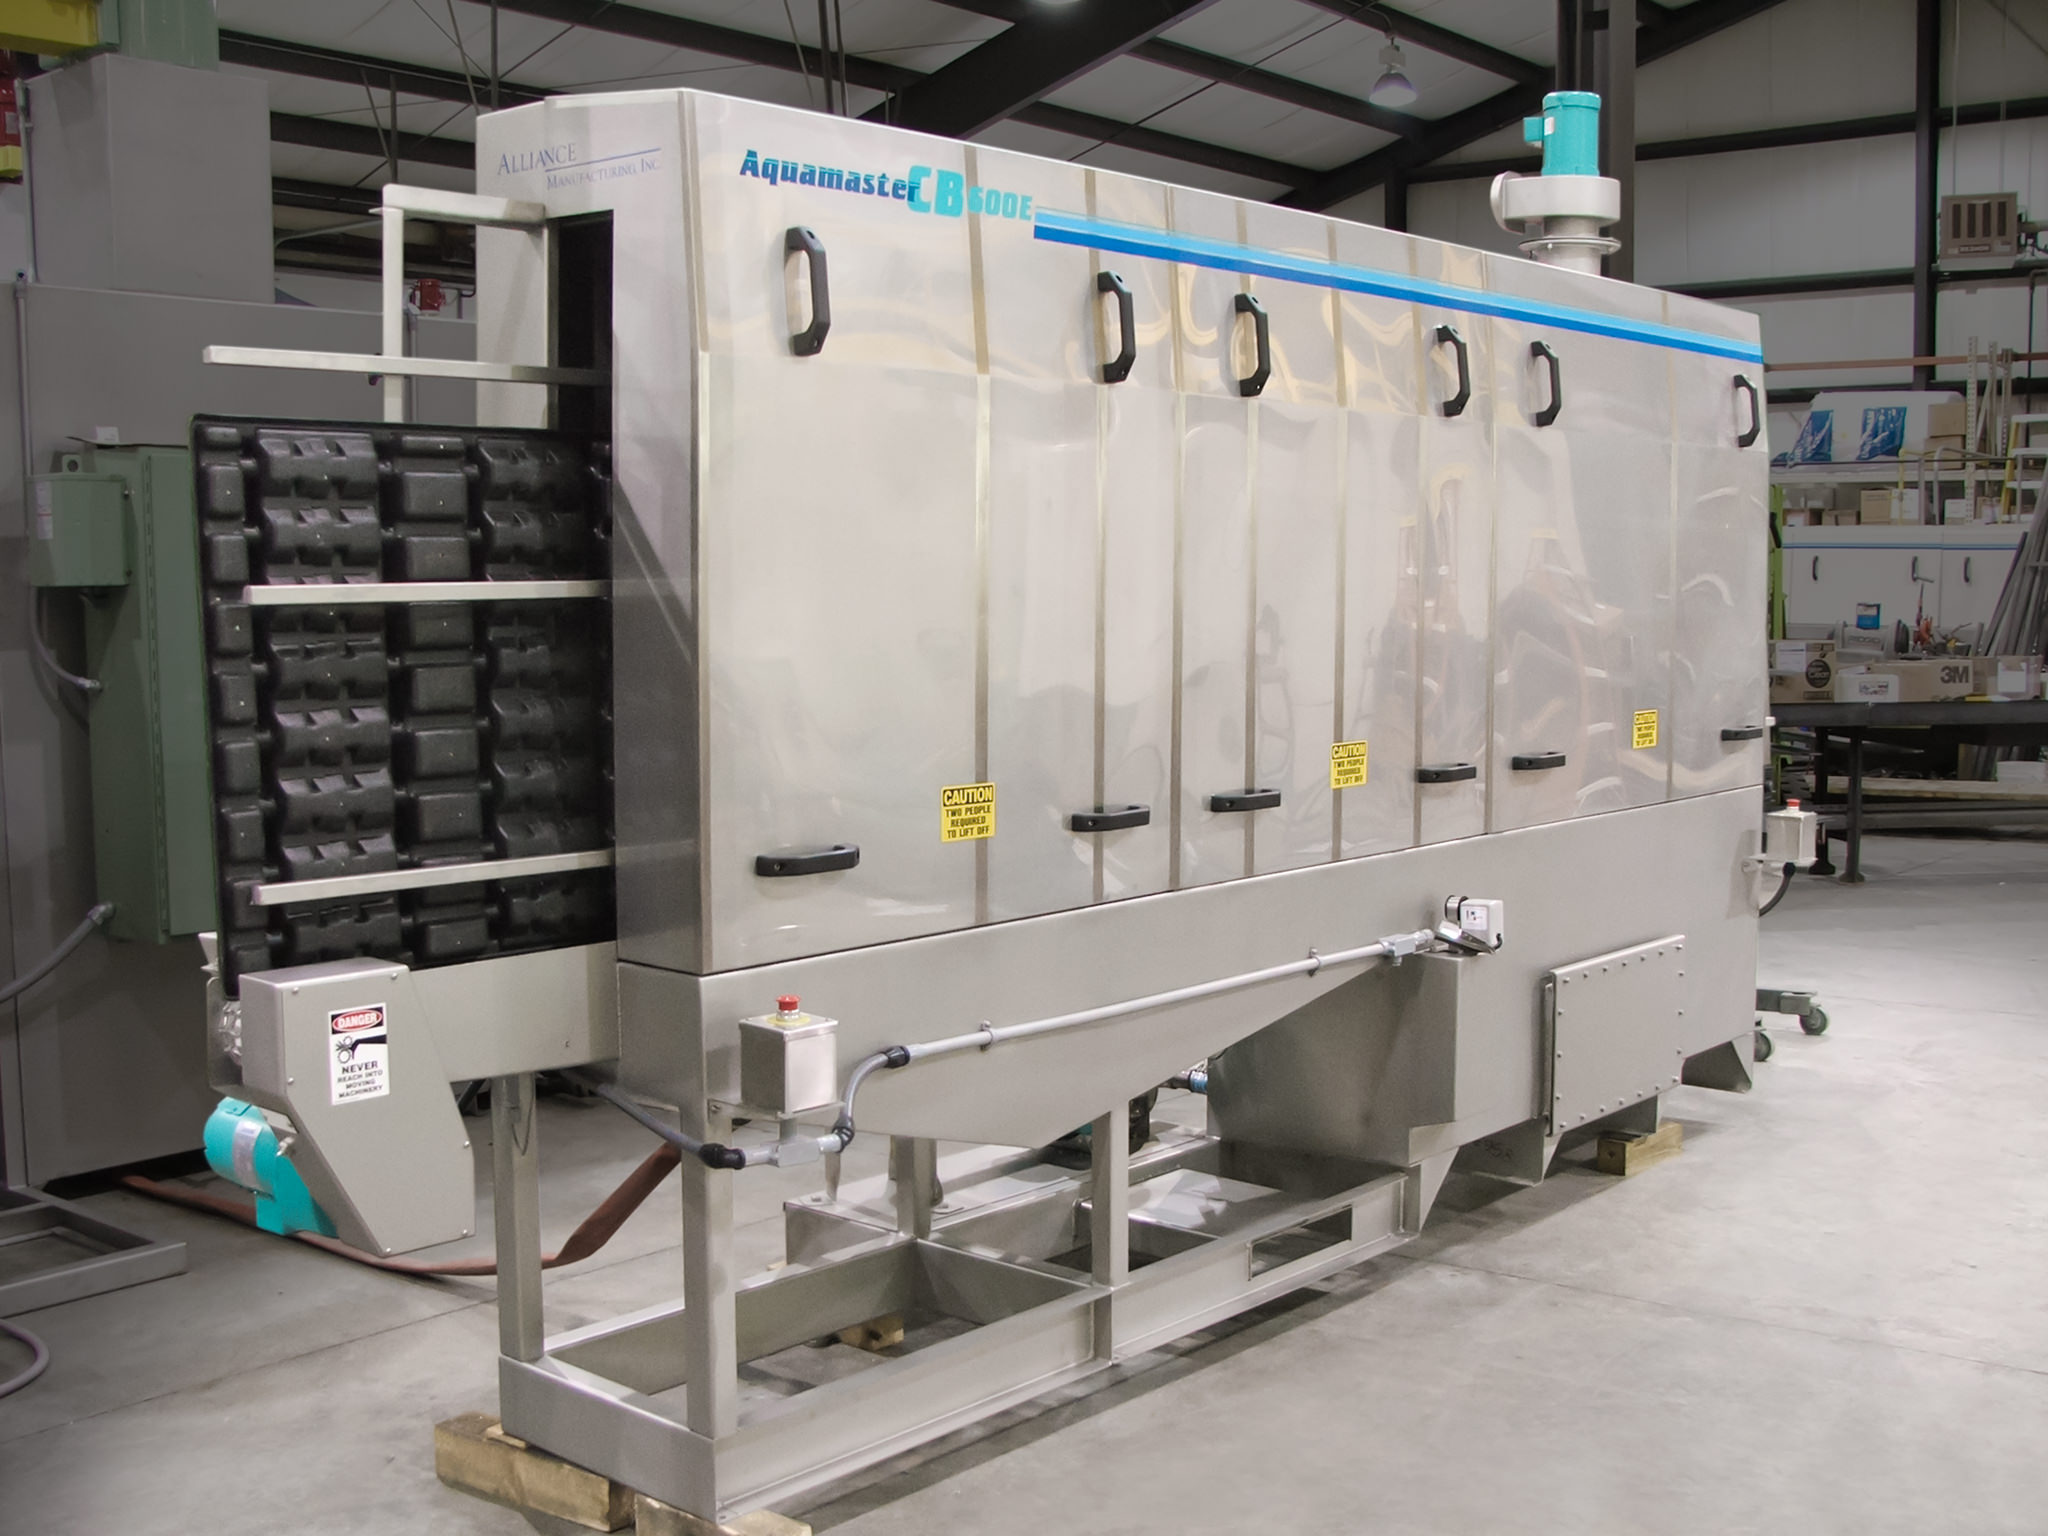 wash system for trays used in food production